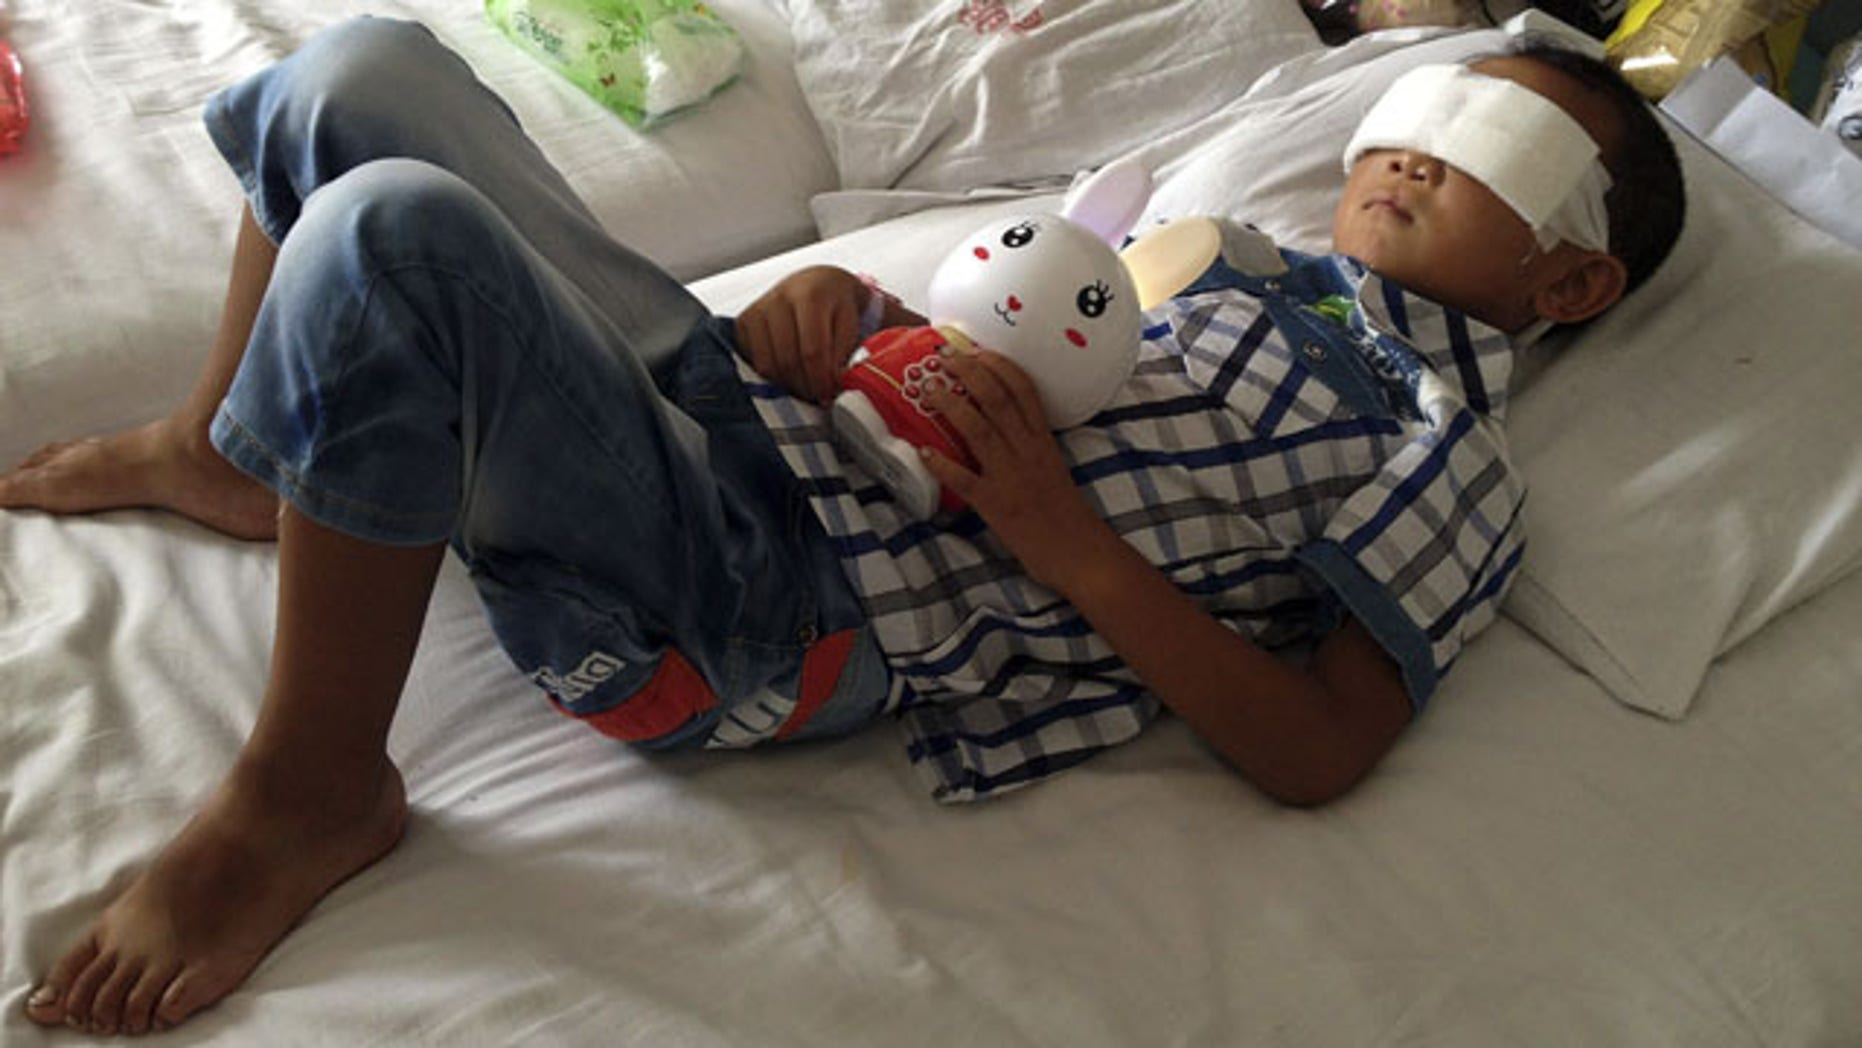 August 28, 2013: Guo Bin lies on a bed in a hospital as he recuperates from an attack in the rural area of Linfen city that left him blind, in Taiyuan in northwest China's Shanxi province. (AP Photo)